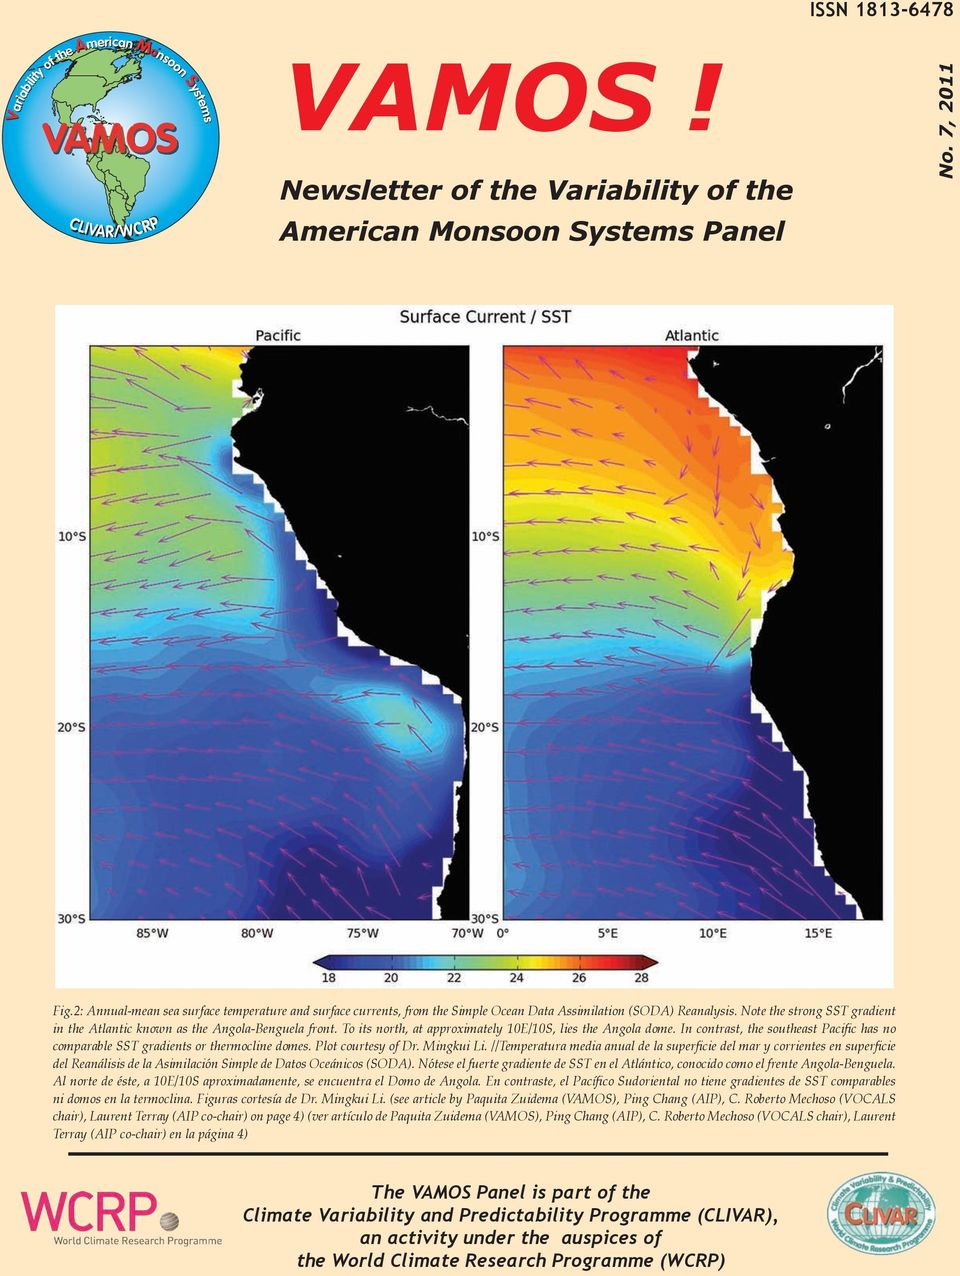 To its north, at approximately 10E/10S, lies the Angola dome. In contrast, the southeast Pacific has no comparable SST gradients or thermocline domes. Plot courtesy of Dr. Mingkui Li.